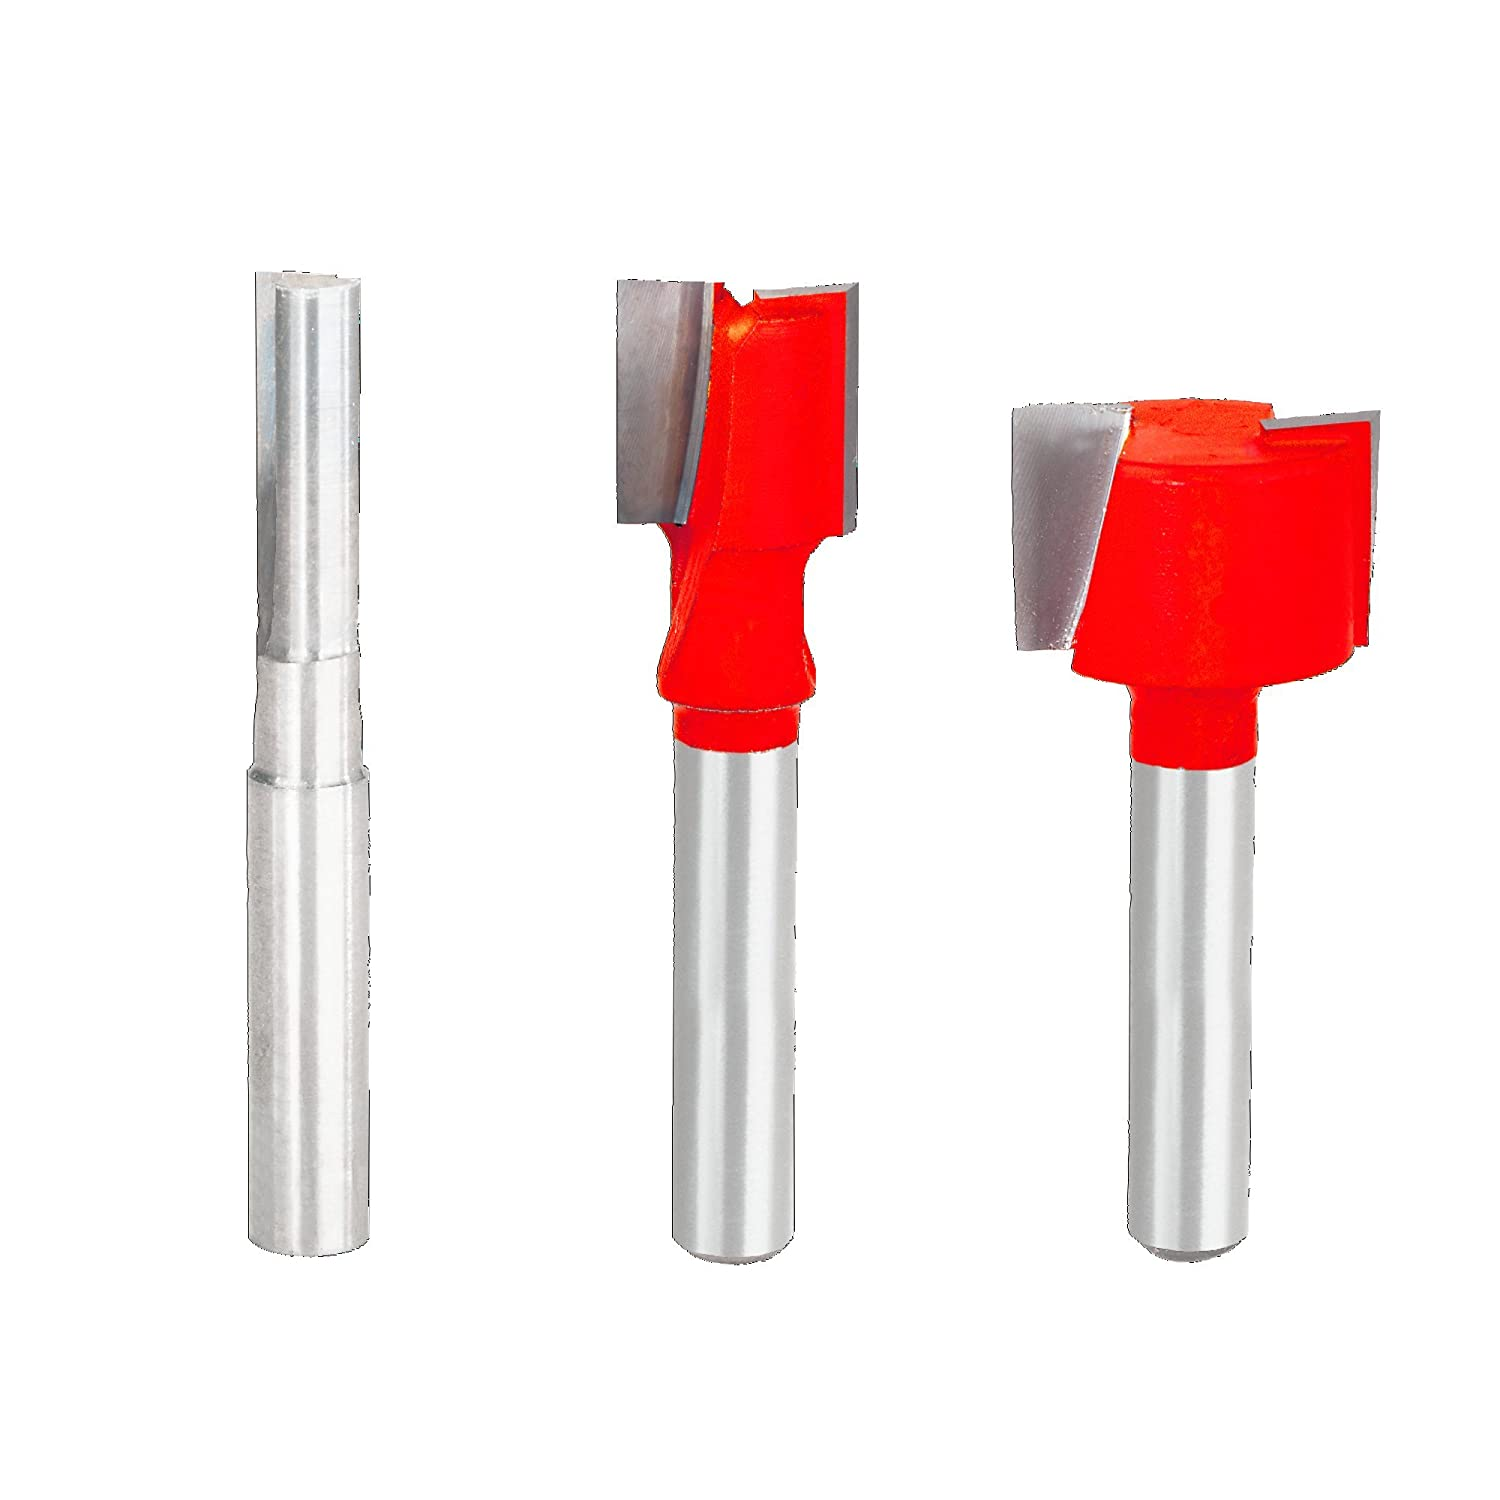 1//2 Shank Freud 3 Piece Chamfer Bit Set 89-250